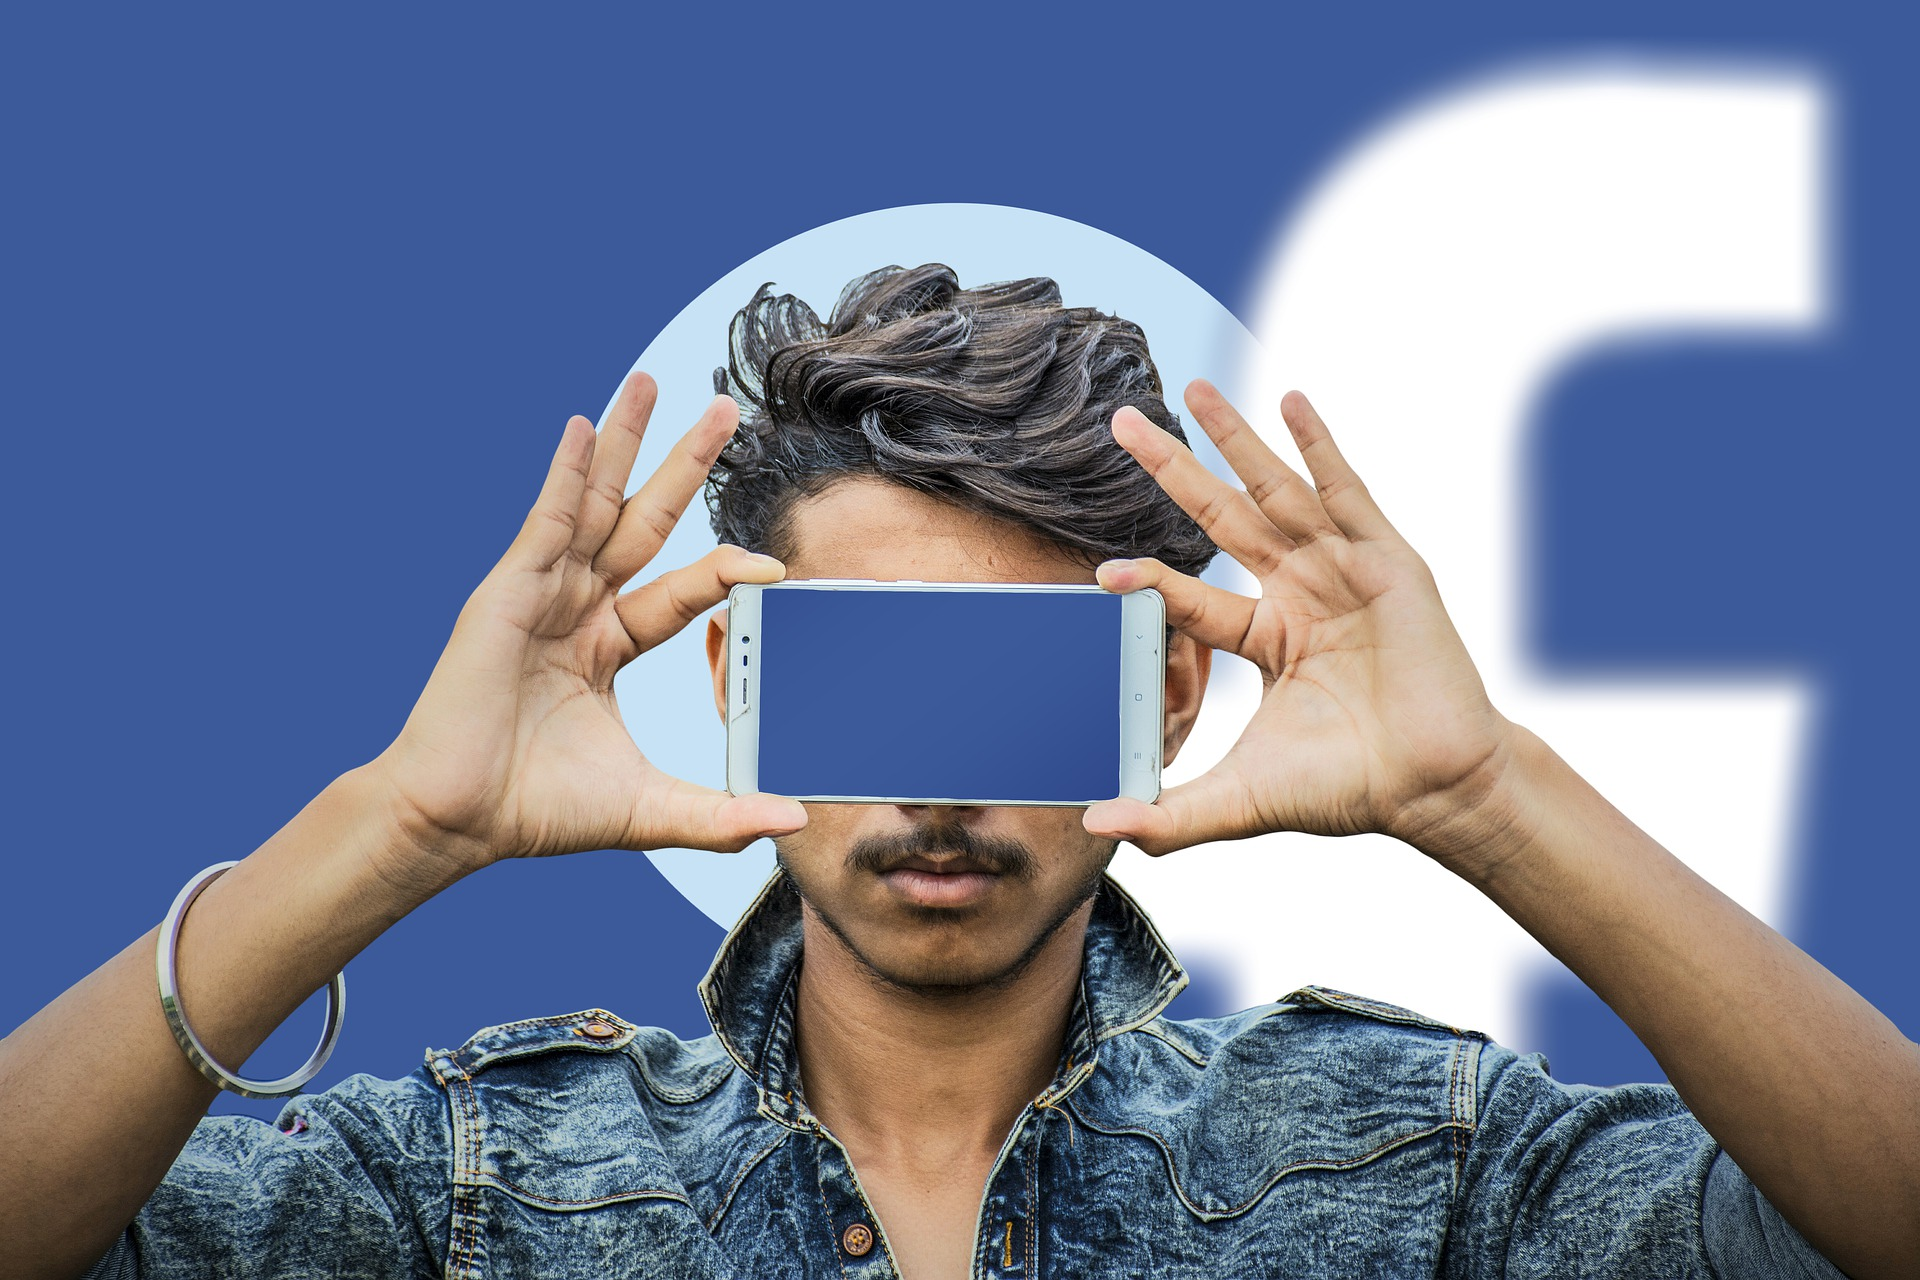 man holding smartphone over his face